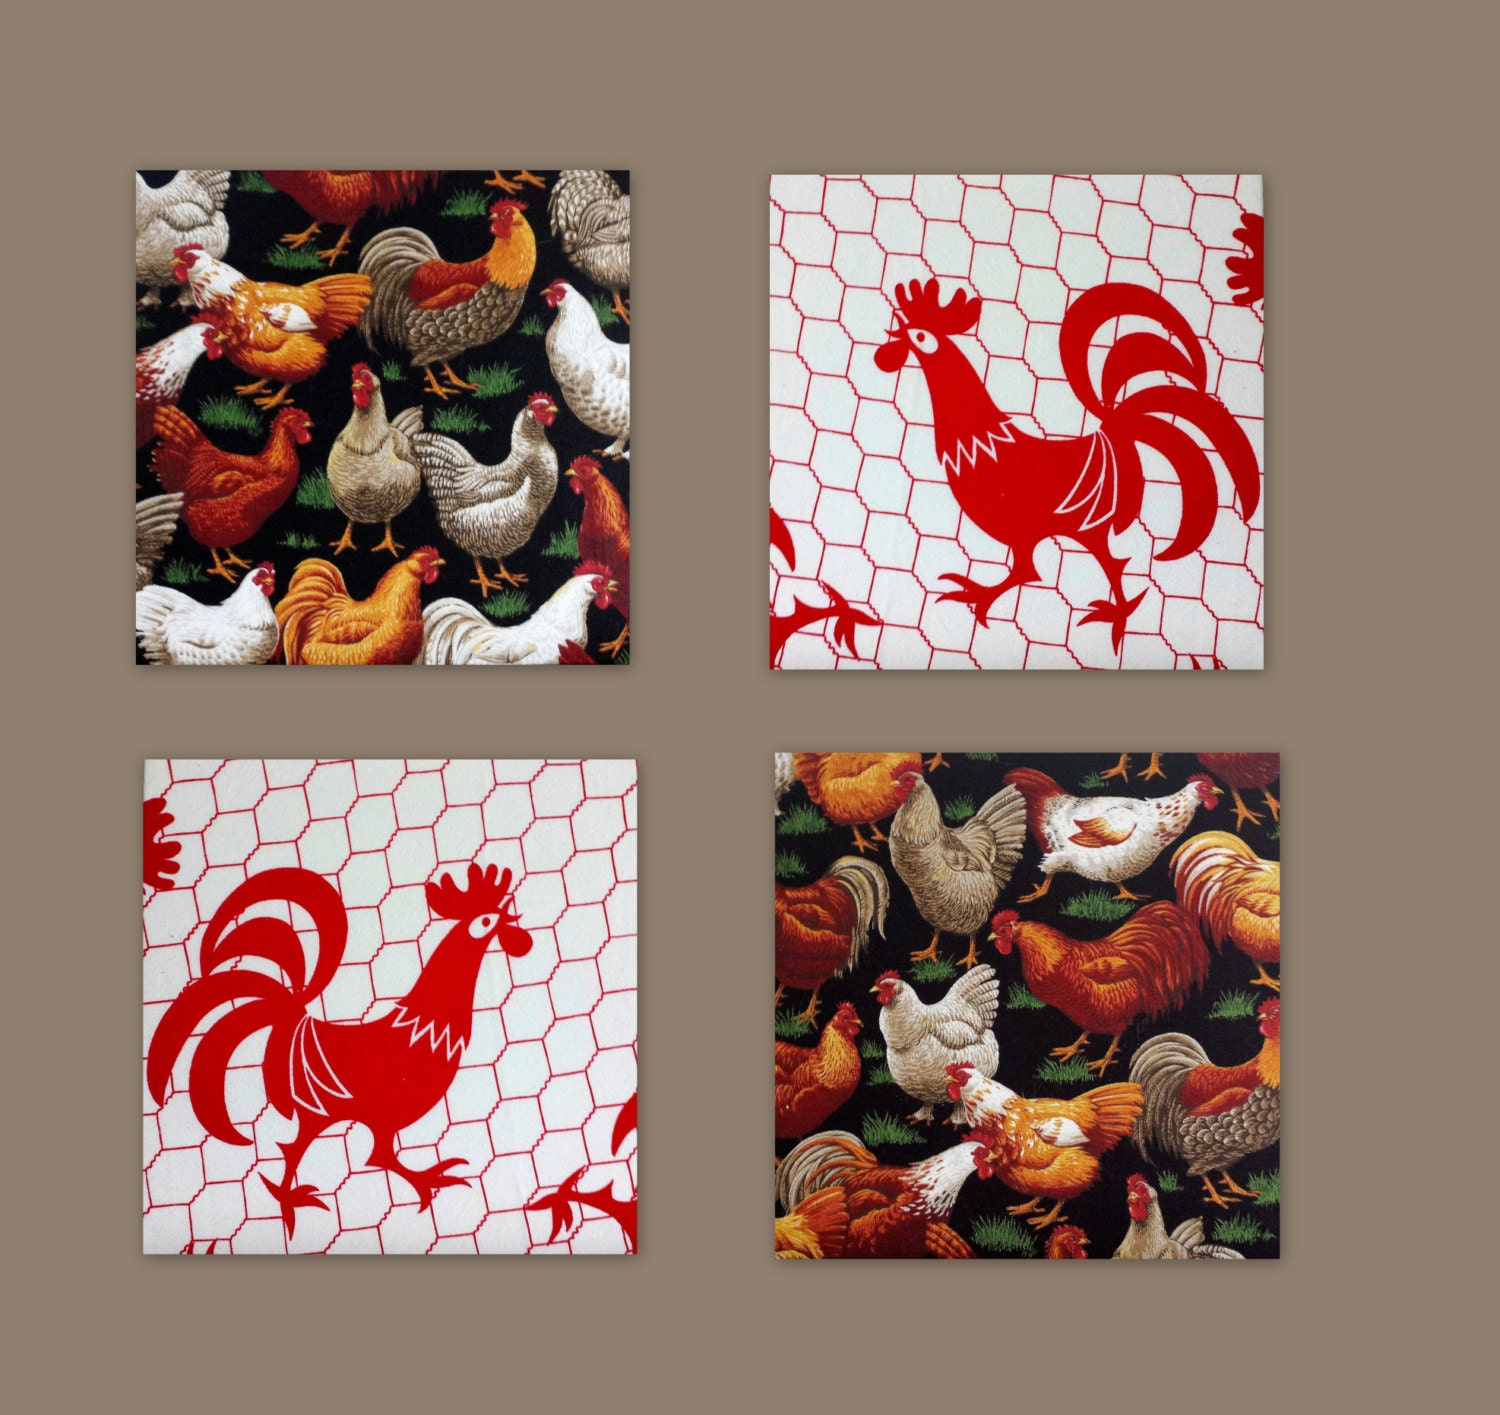 Kitchen wall decor chickens rooster hens fabric by - Rooster wall decor kitchen ...